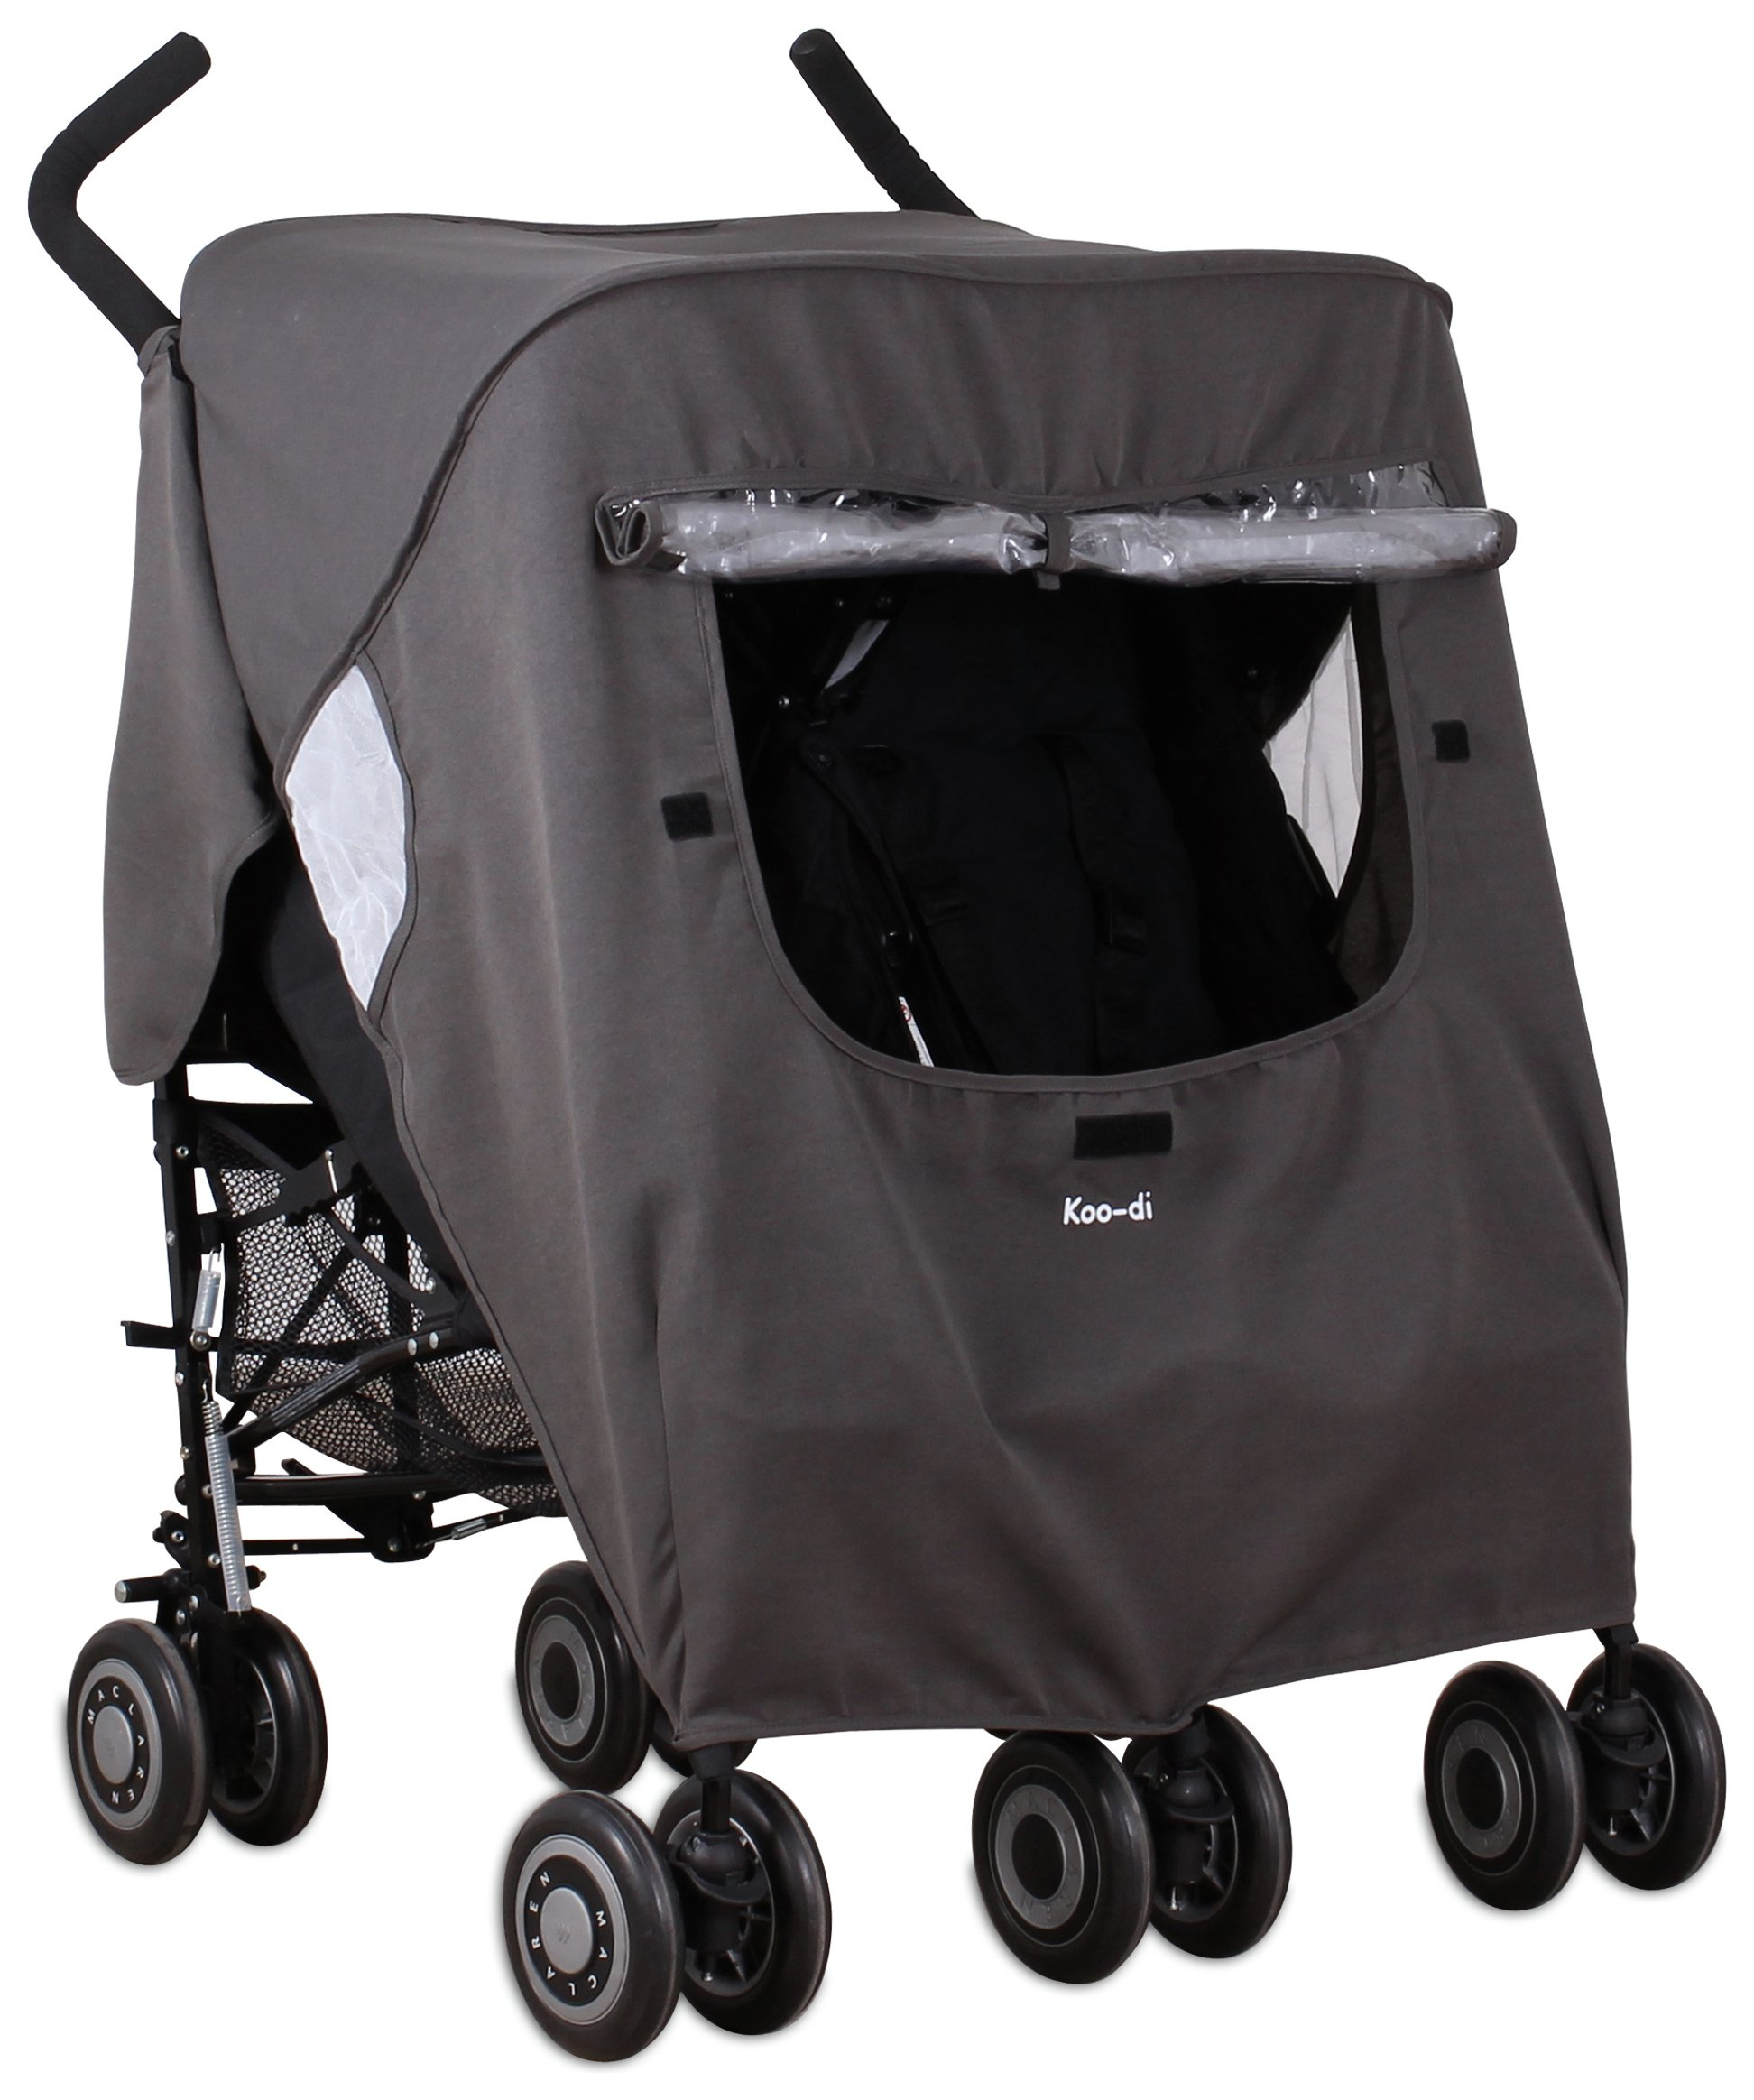 Image of Koo-di Pack-It Double - Stroller Rain Cover